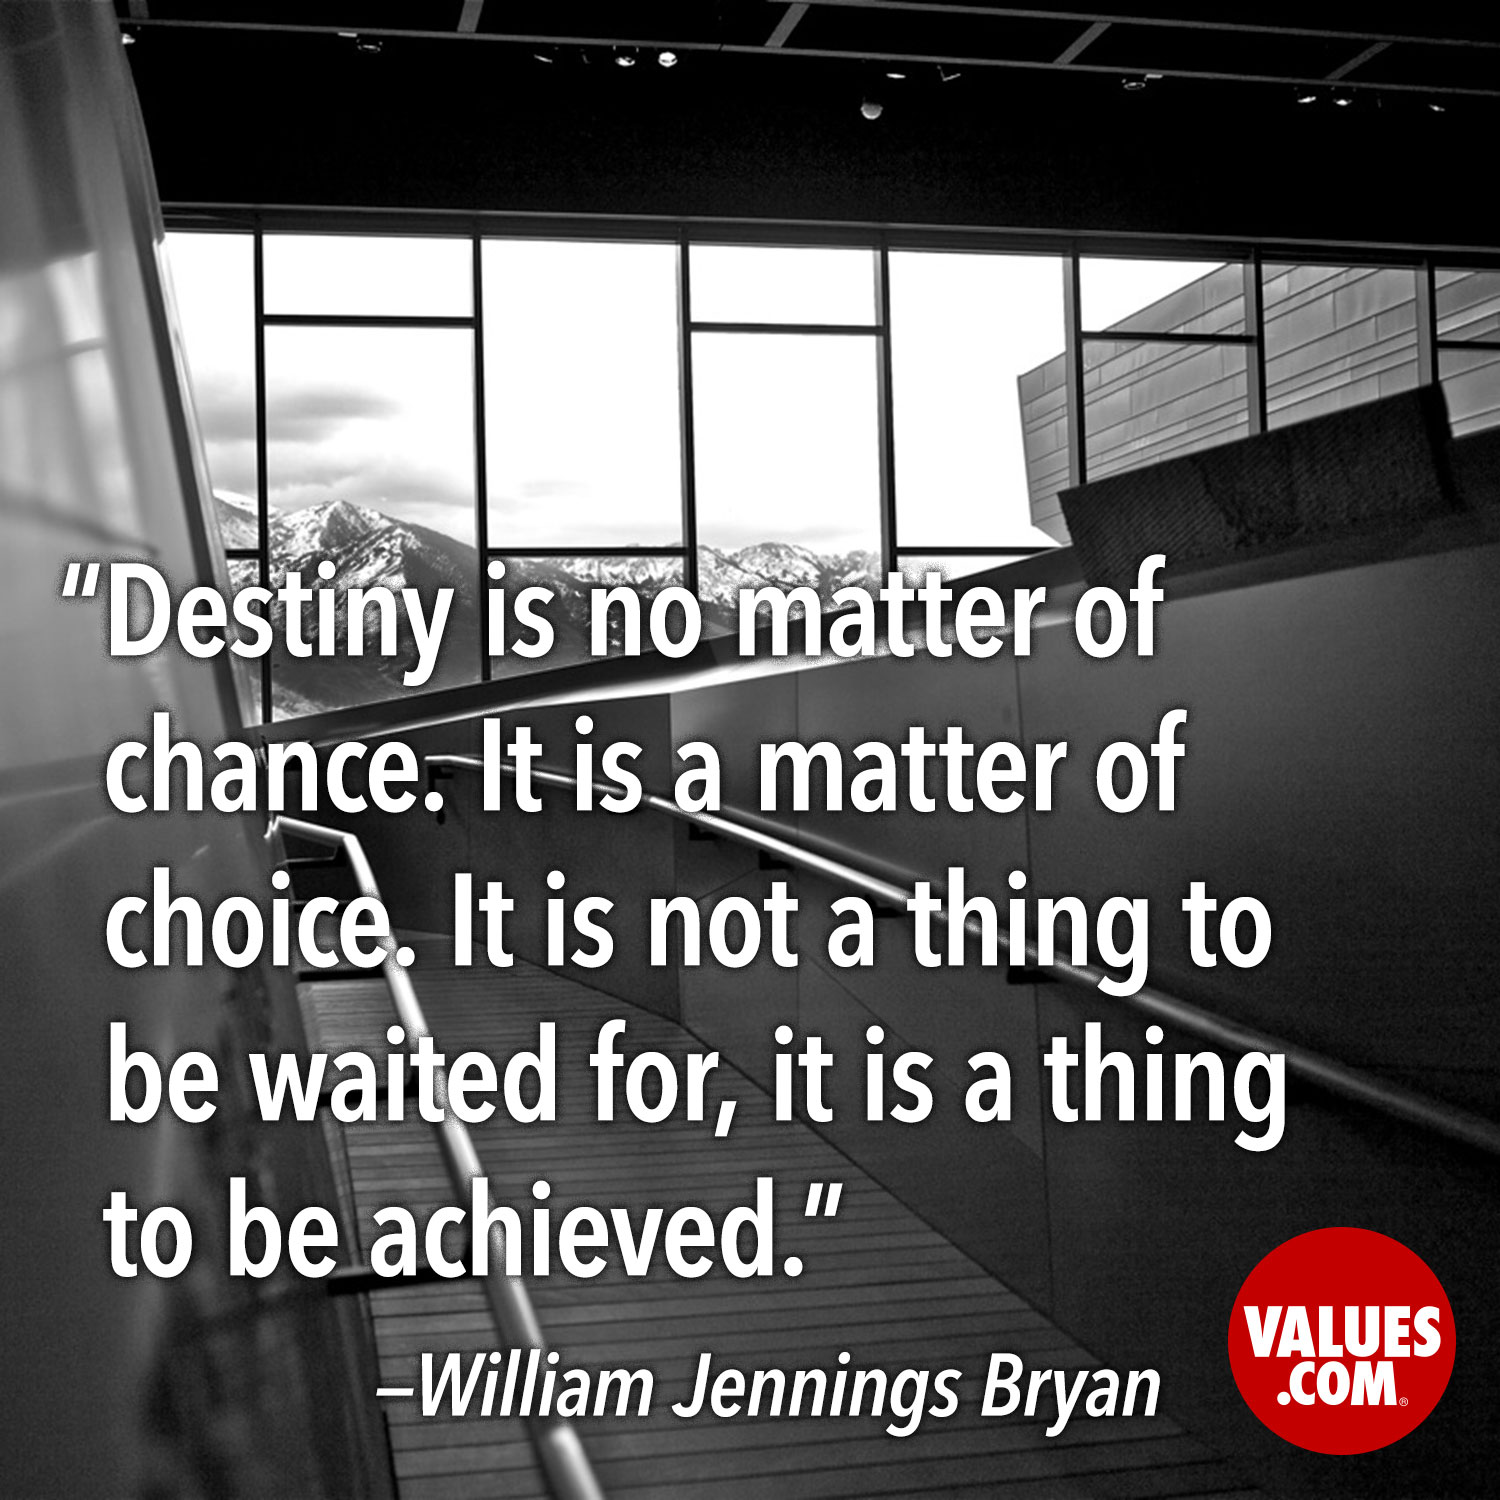 Destiny is no matter of chance. It is a matter of choice. It is not a thing to be waited for, it is a thing to be achieved. —William Jennings Bryan